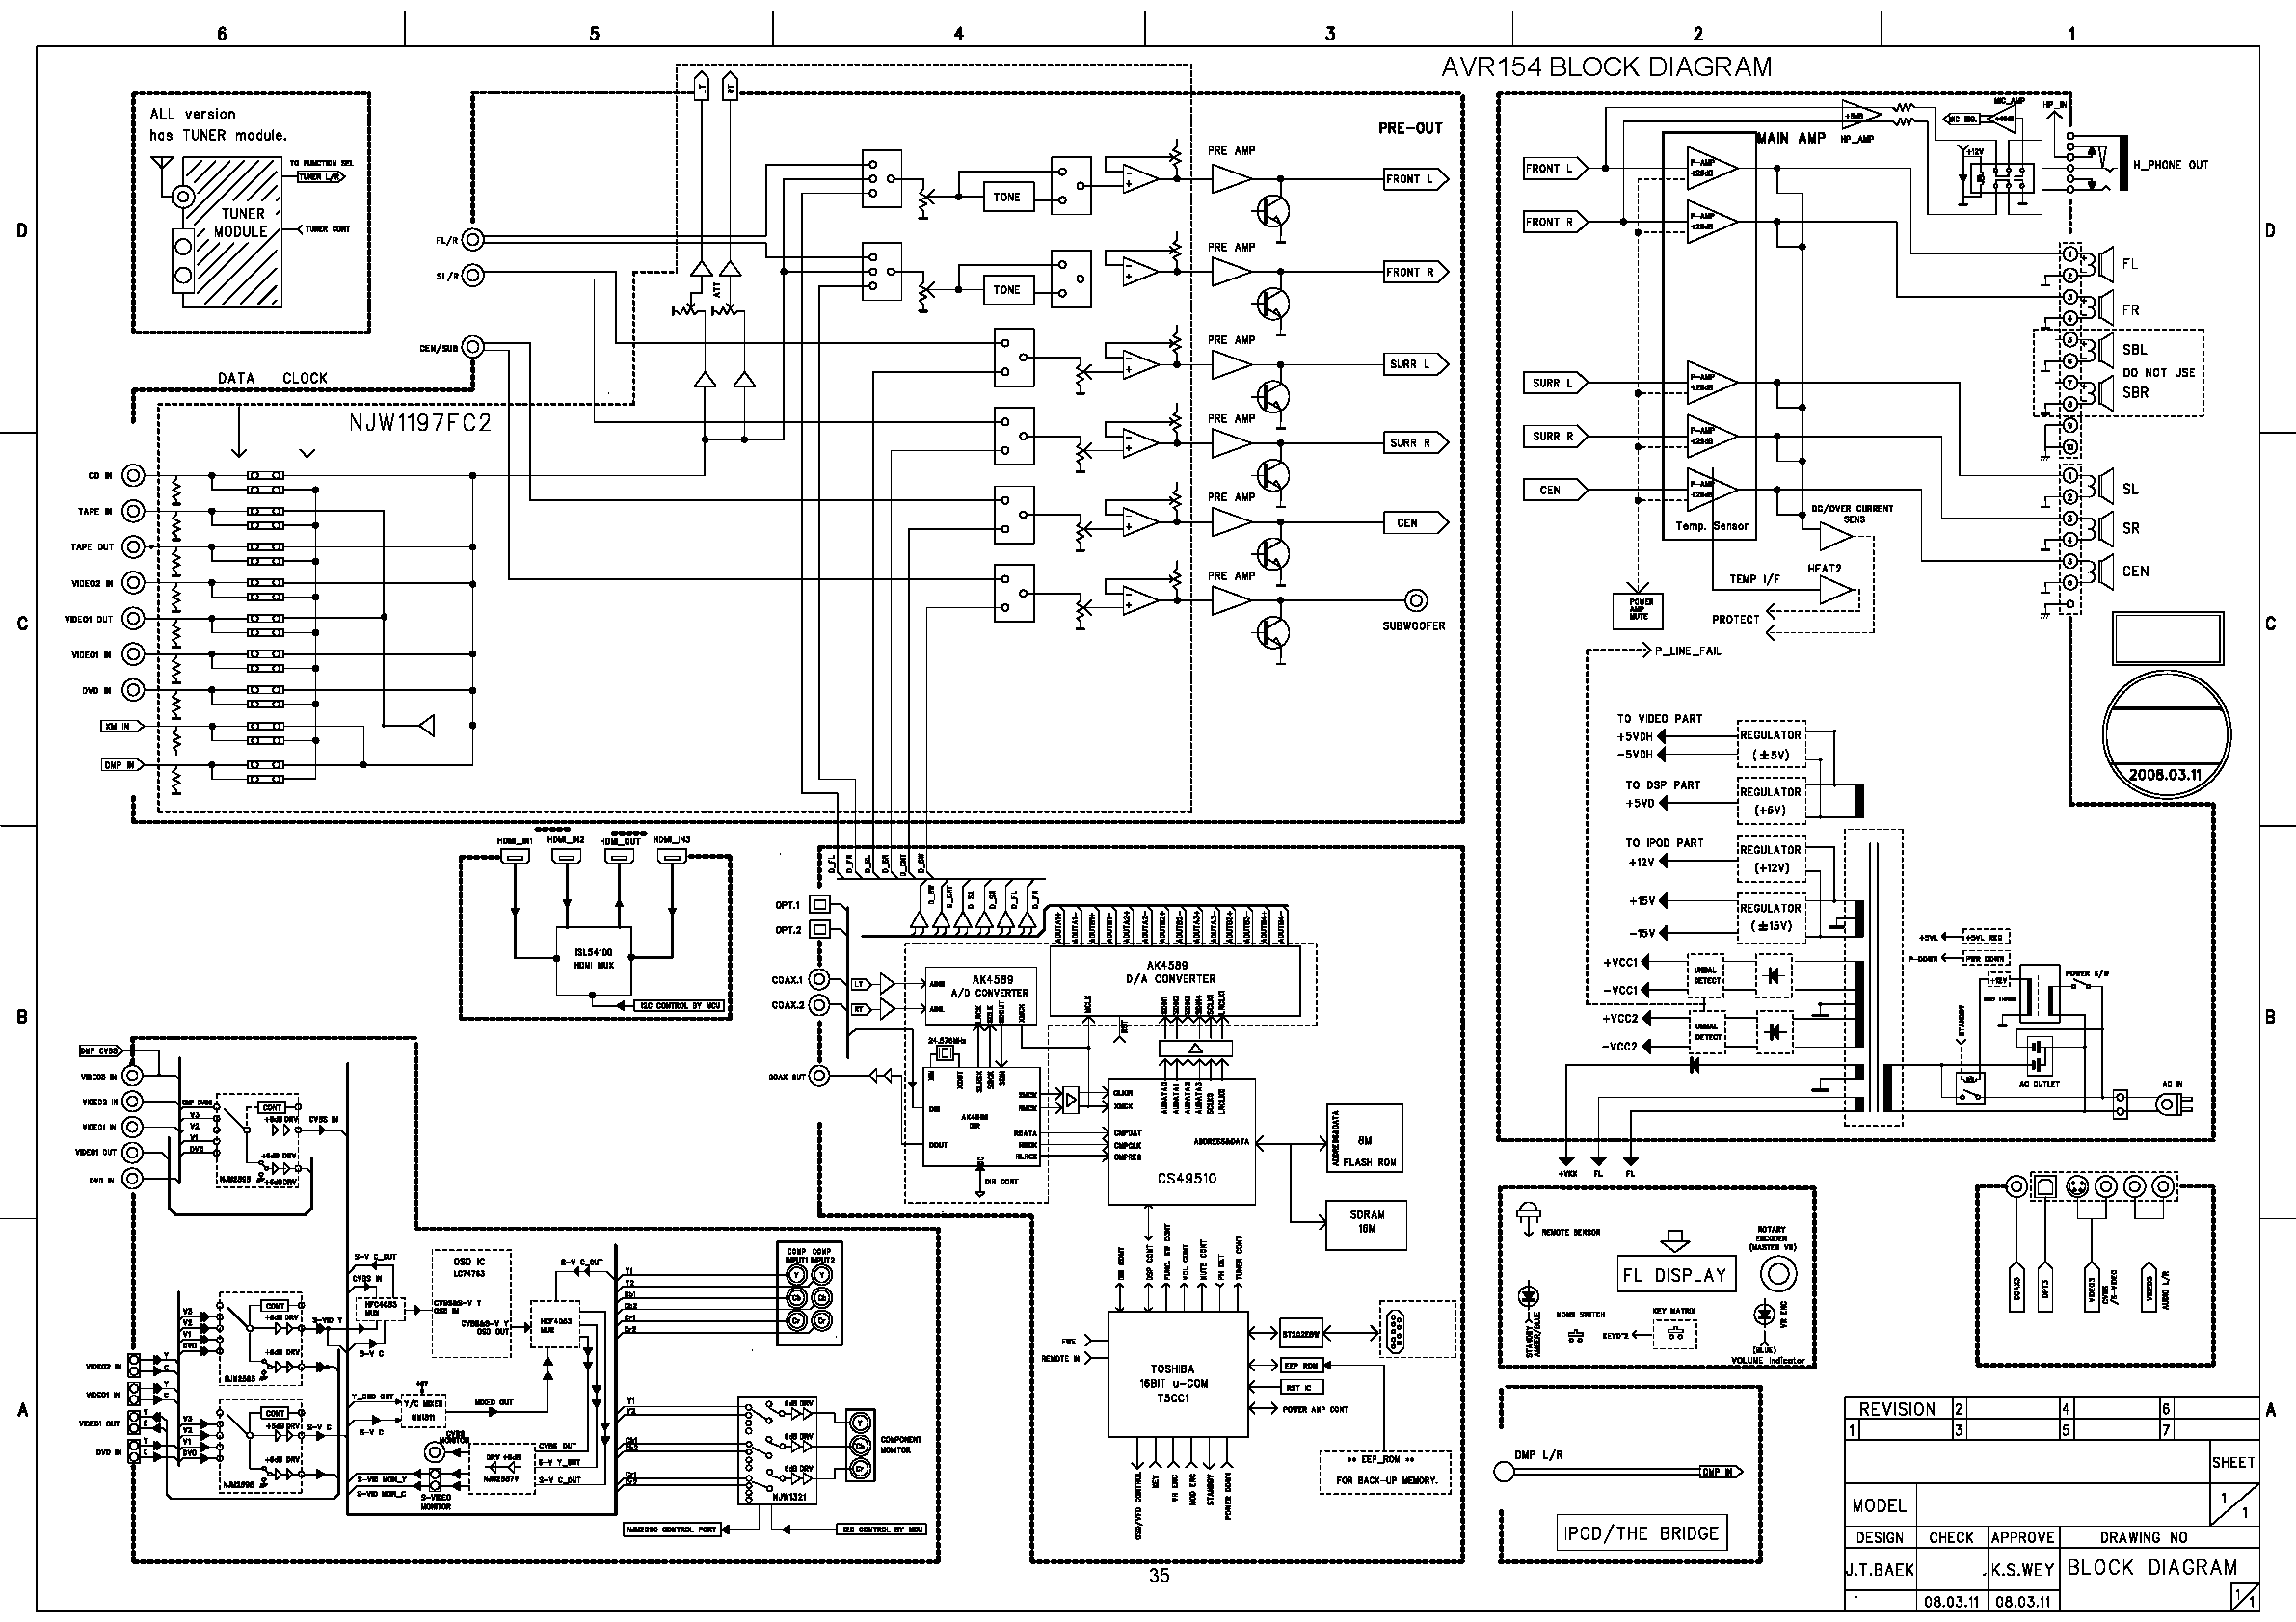 Ml350 fuse box diagrams also 1984 Trans Am Wiring Diagram likewise Mazda Protege Daytime Running Light Drl Wiring Diagram furthermore P 0996b43f80388a9a furthermore 94 Chevy G20 Van Sd Sensor Location. on gmc fuse box diagrams